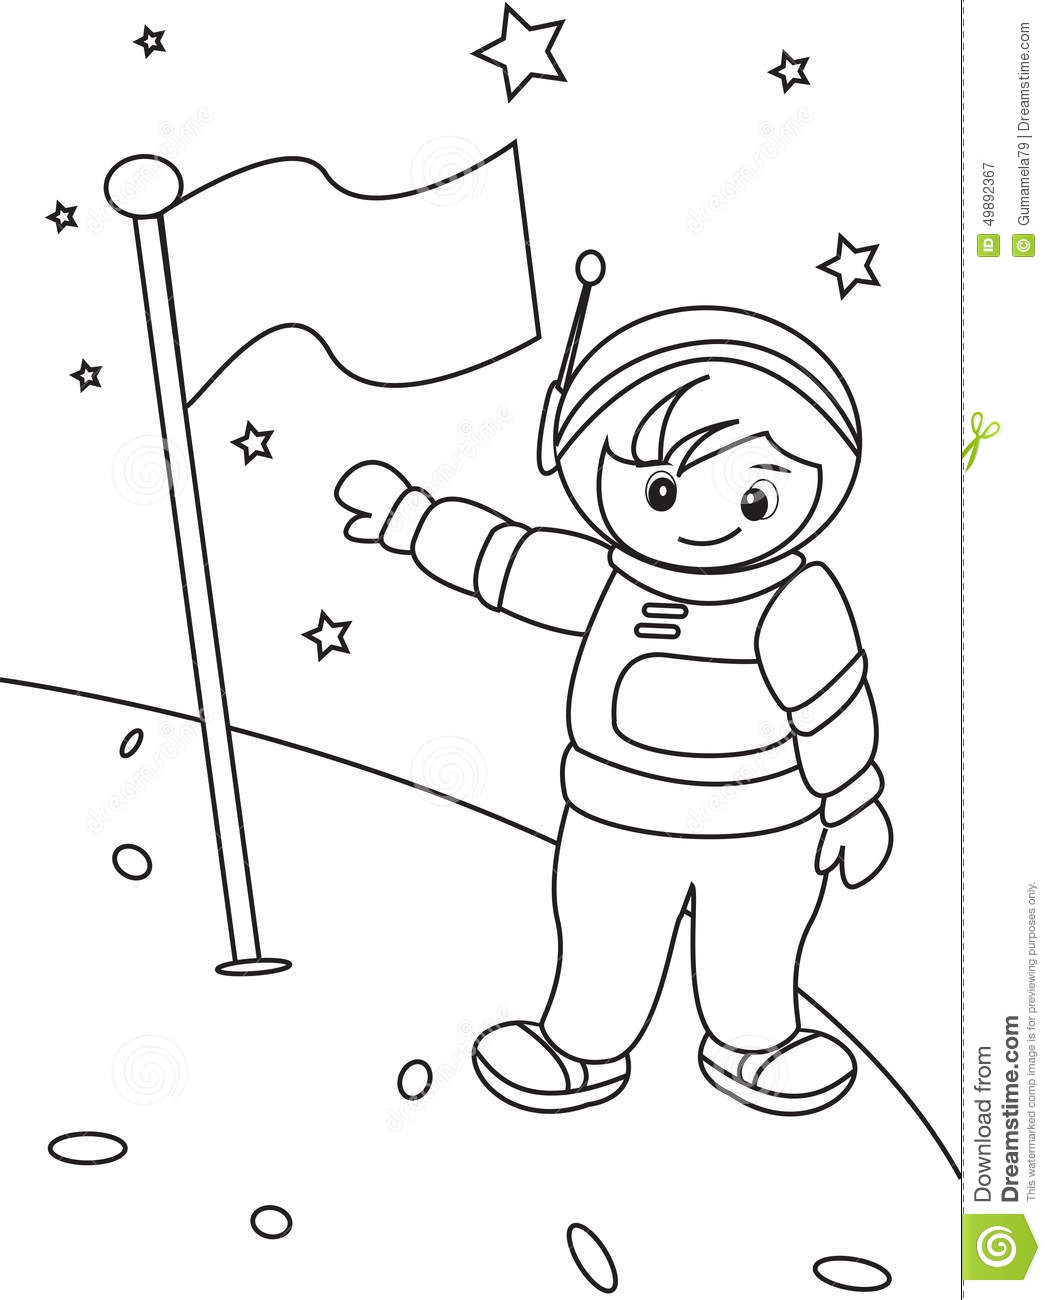 Astronaut Coloring Page Stock Illustration